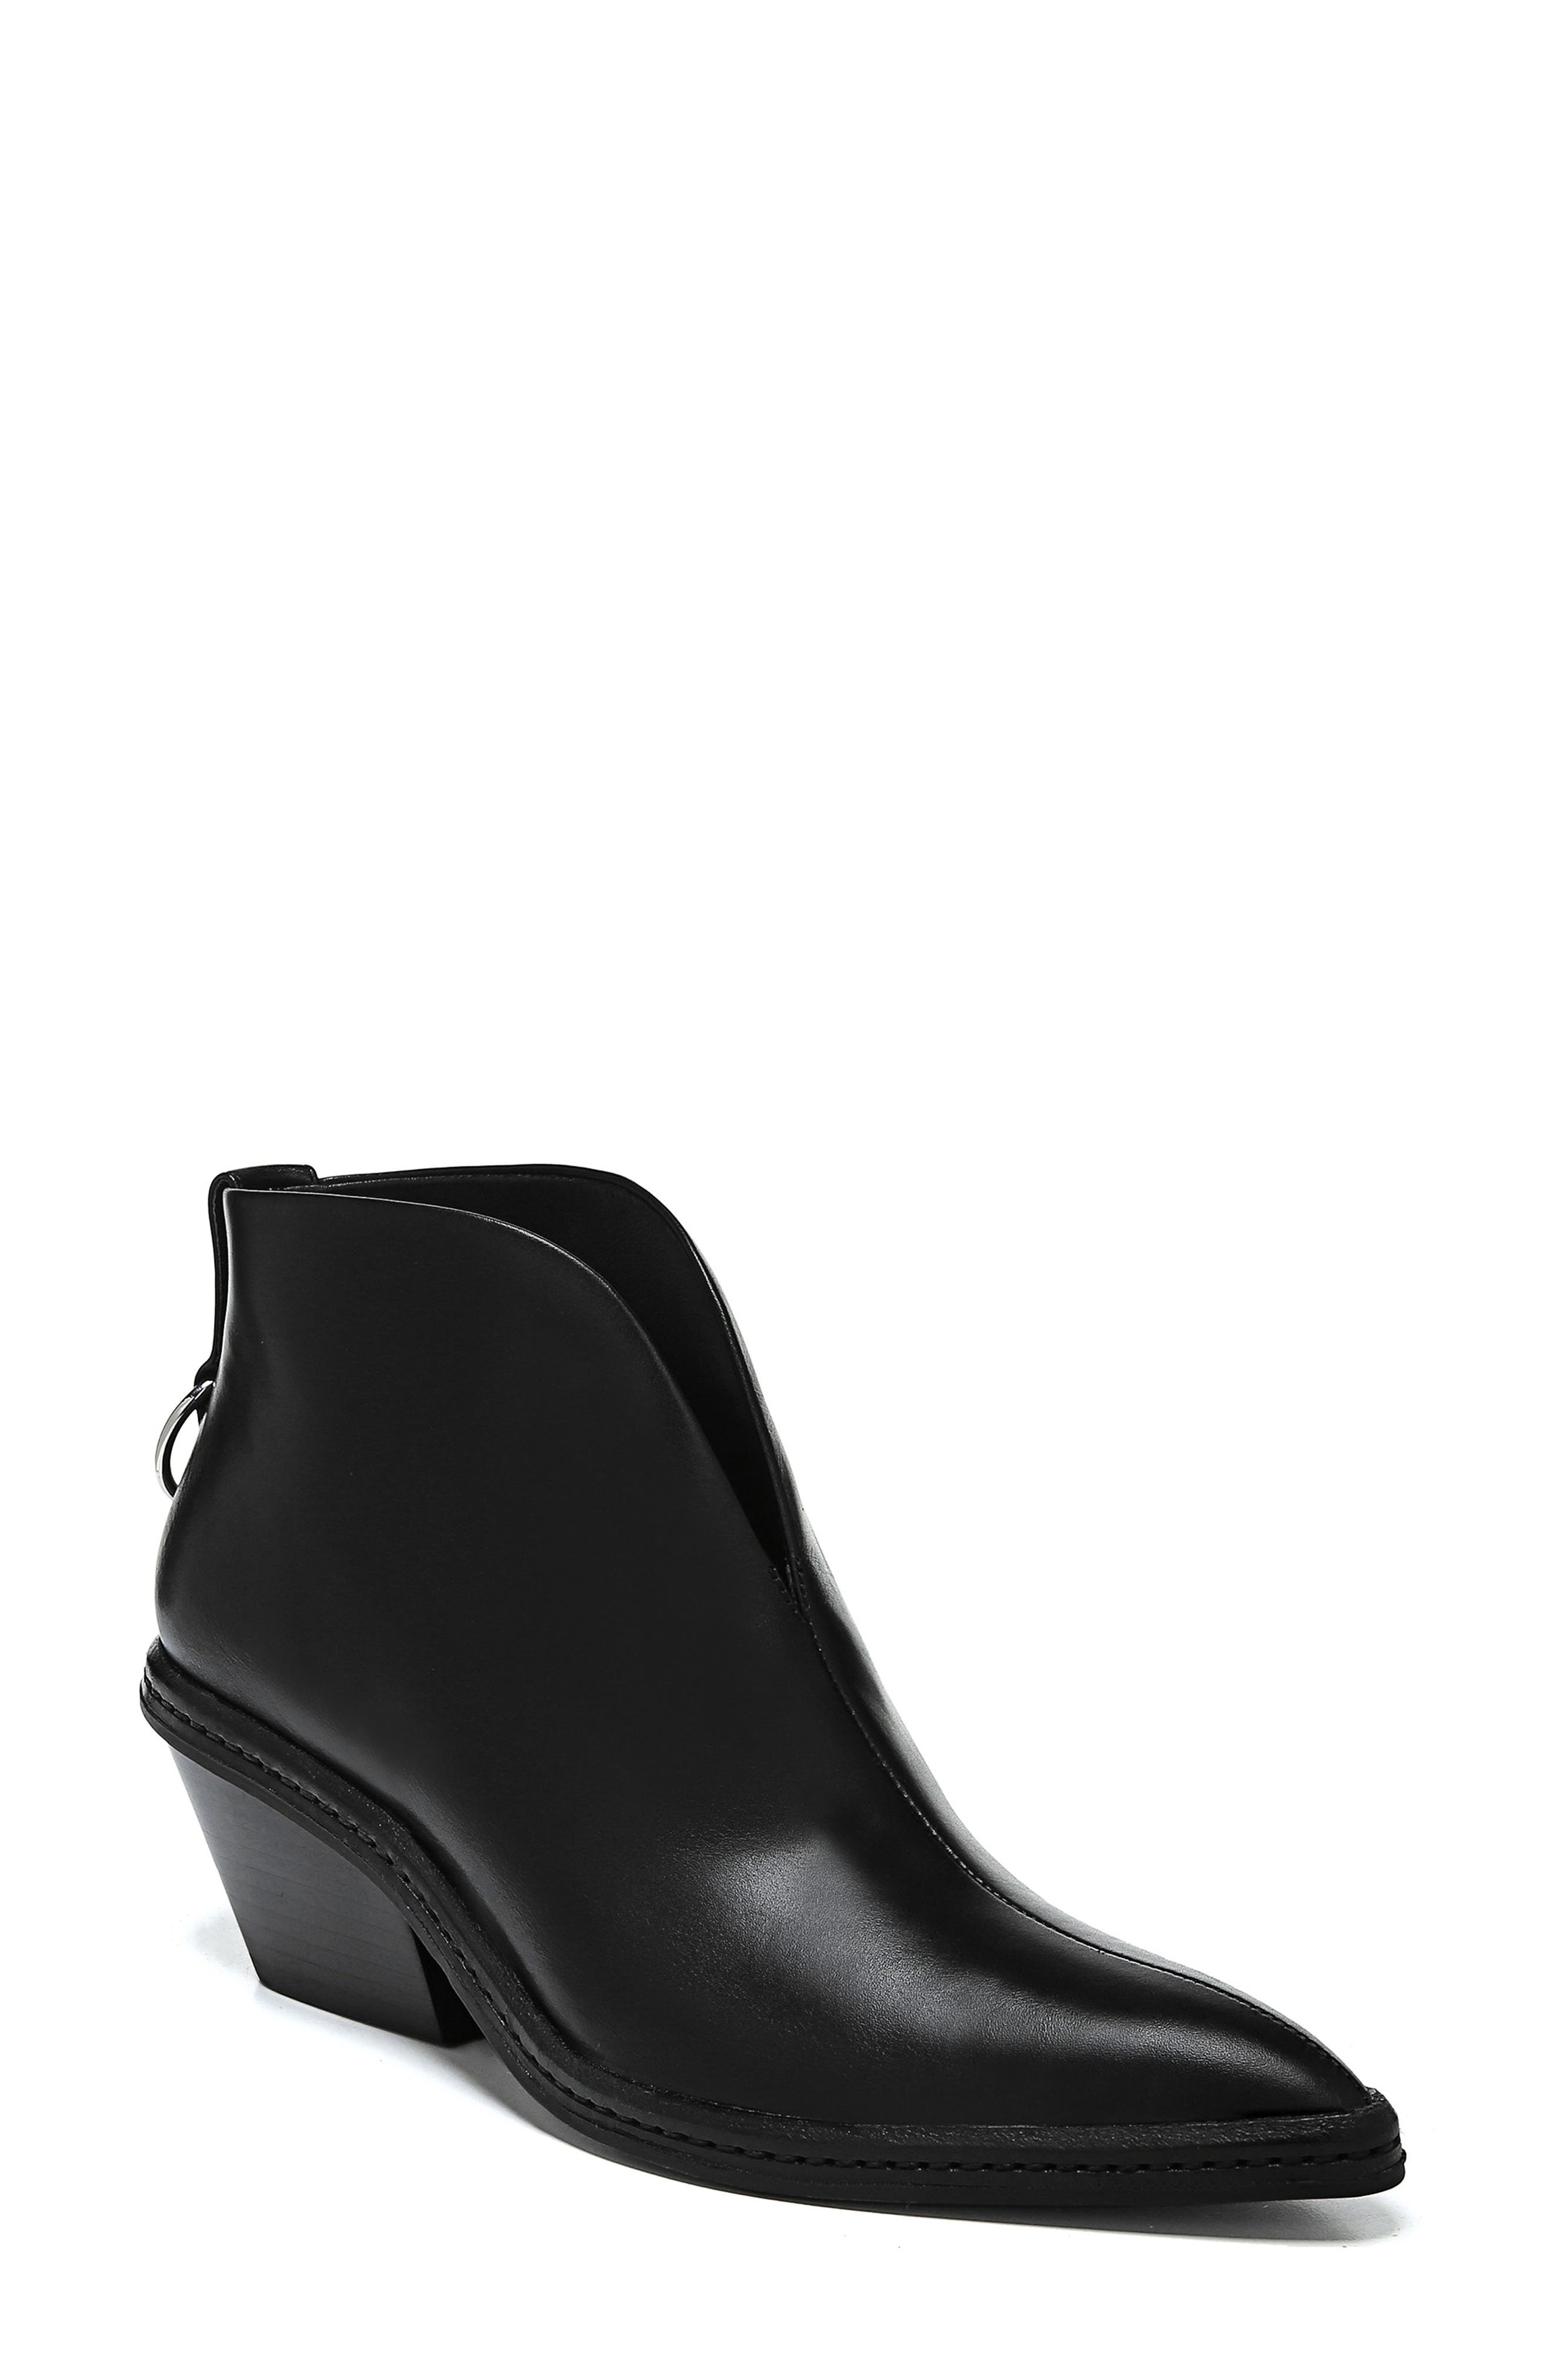 VIA SPIGA Women'S Fianna Pointed Toe Leather Ankle Booties in Black